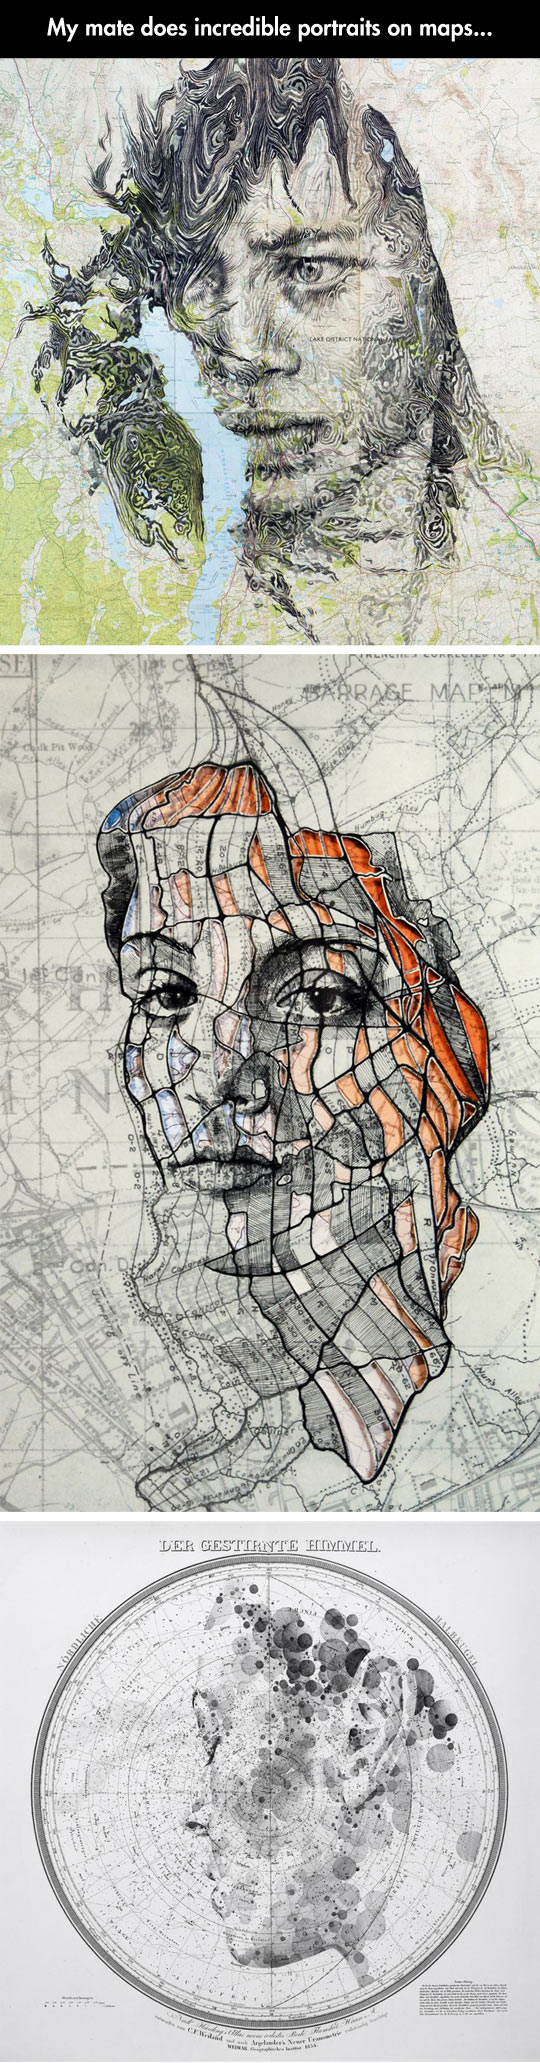 funny-maps-portrait-painting-faces